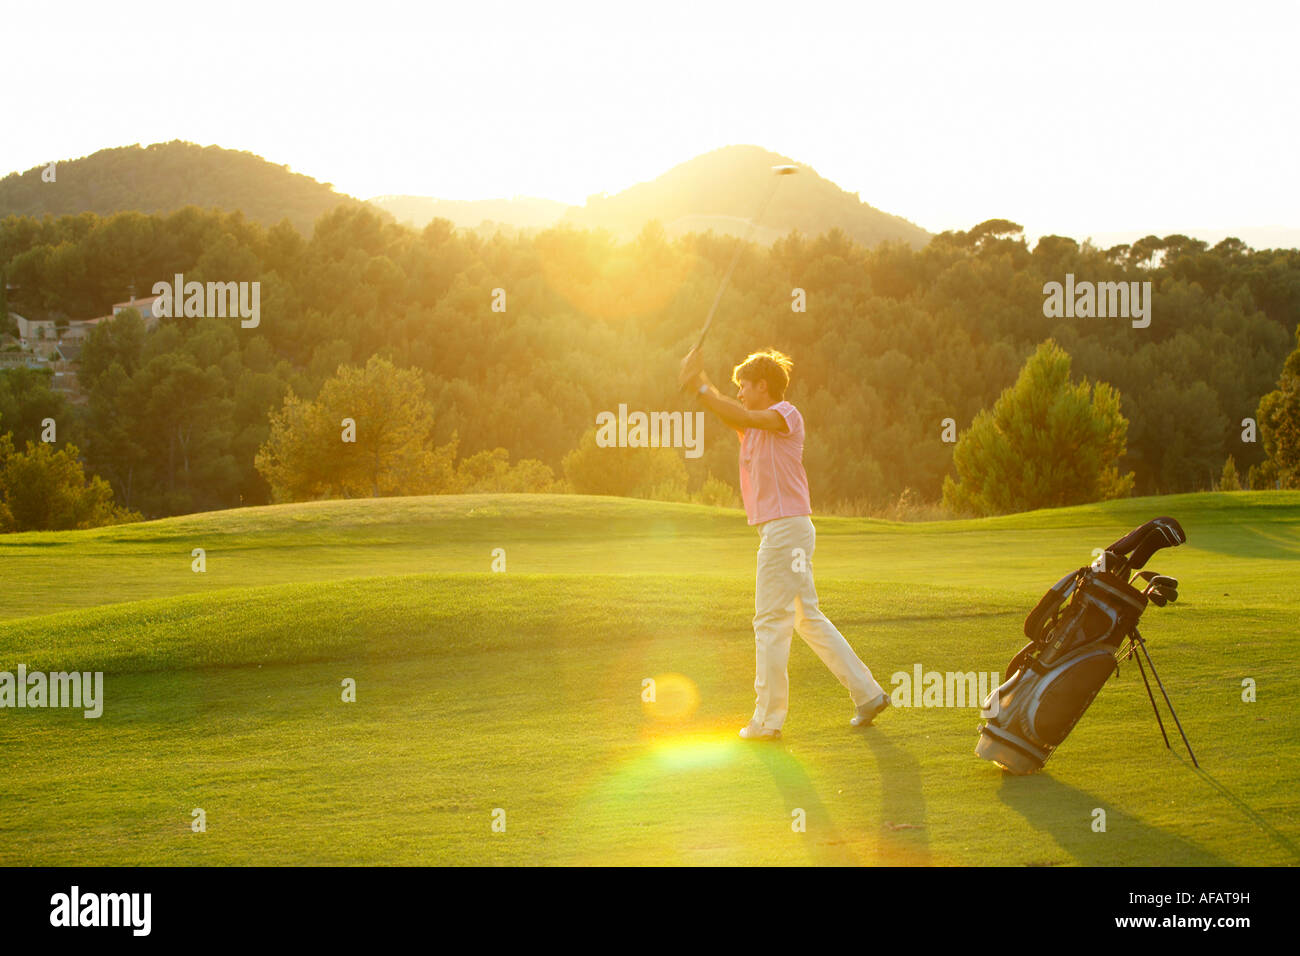 Golfer on the fairway - Stock Image